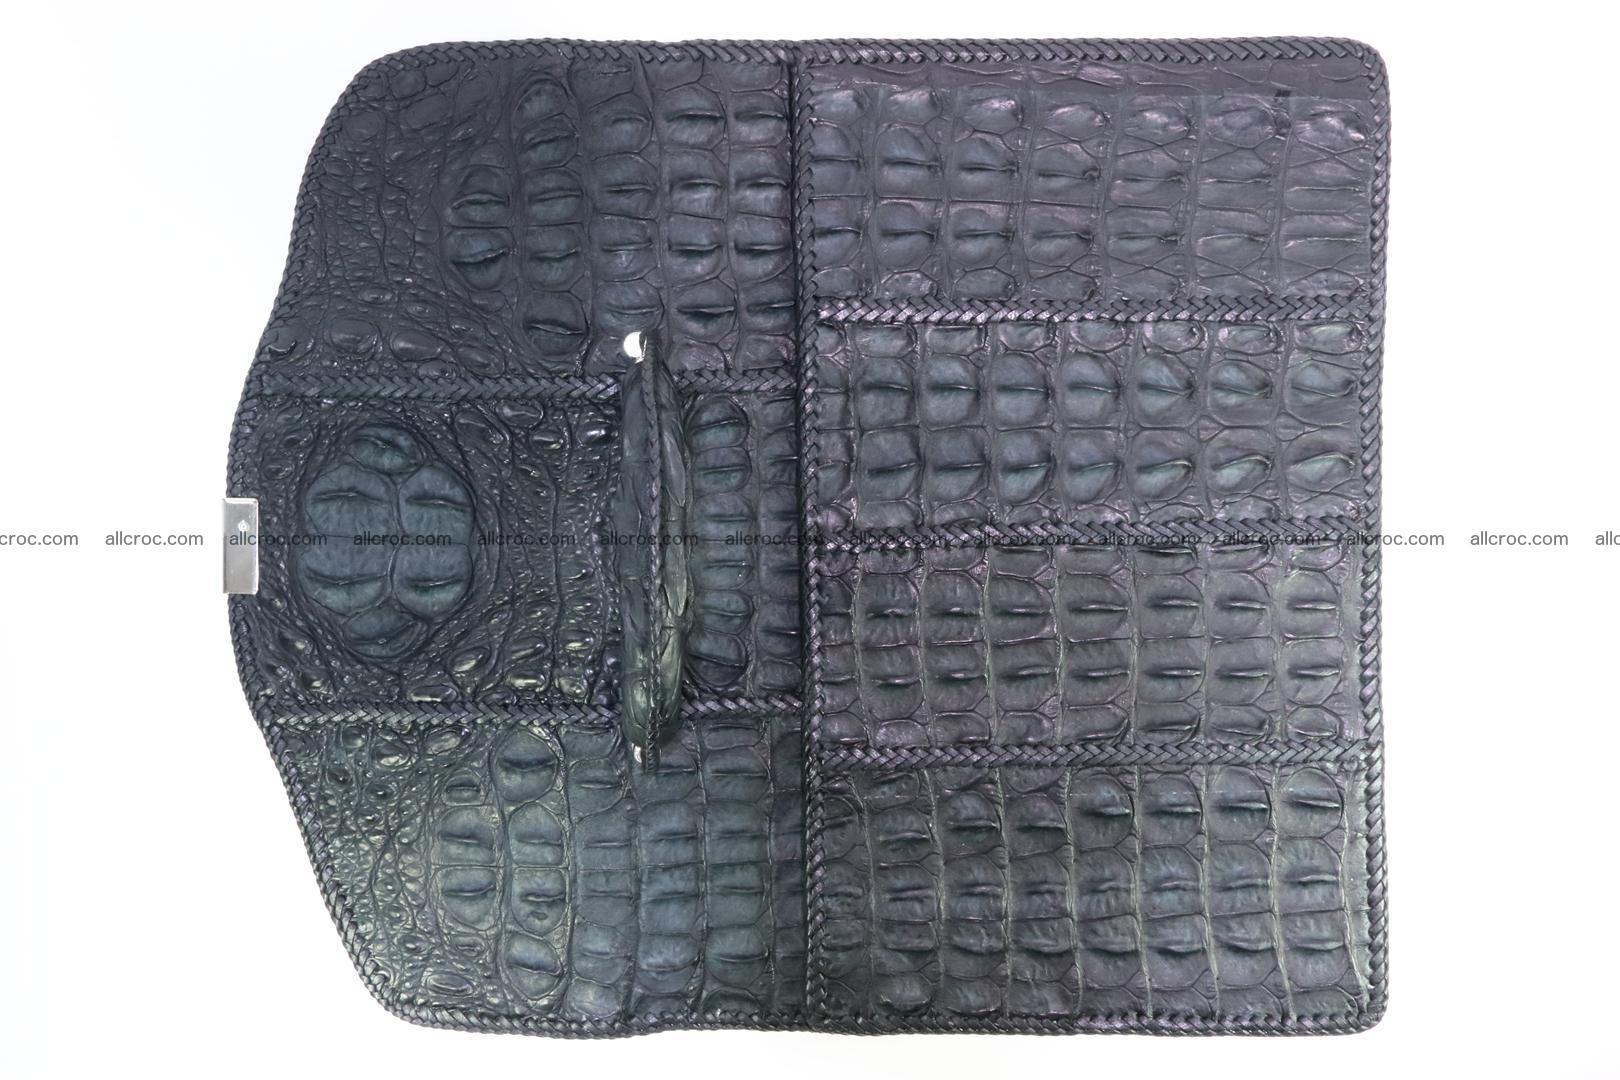 Hand braided crocodile skin briefcase 150 Foto 13